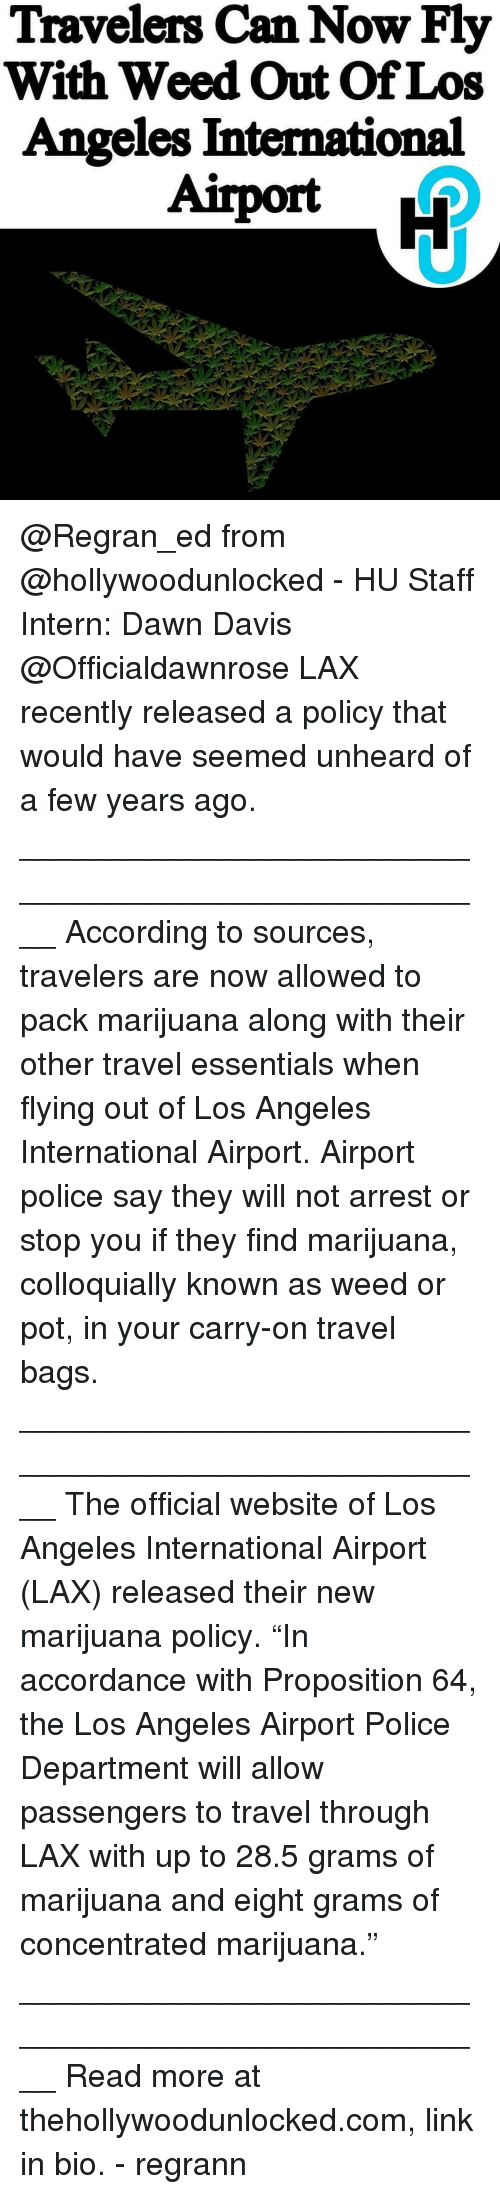 "Memes, Police, and Weed: Travelers Can Now Fly  With Weed Out Of Los  Angeles International @Regran_ed from @hollywoodunlocked - HU Staff Intern: Dawn Davis @Officialdawnrose LAX recently released a policy that would have seemed unheard of a few years ago. ____________________________________________________ According to sources, travelers are now allowed to pack marijuana along with their other travel essentials when flying out of Los Angeles International Airport. Airport police say they will not arrest or stop you if they find marijuana, colloquially known as weed or pot, in your carry-on travel bags. ____________________________________________________ The official website of Los Angeles International Airport (LAX) released their new marijuana policy. ""In accordance with Proposition 64, the Los Angeles Airport Police Department will allow passengers to travel through LAX with up to 28.5 grams of marijuana and eight grams of concentrated marijuana."" ____________________________________________________ Read more at thehollywoodunlocked.com, link in bio. - regrann"